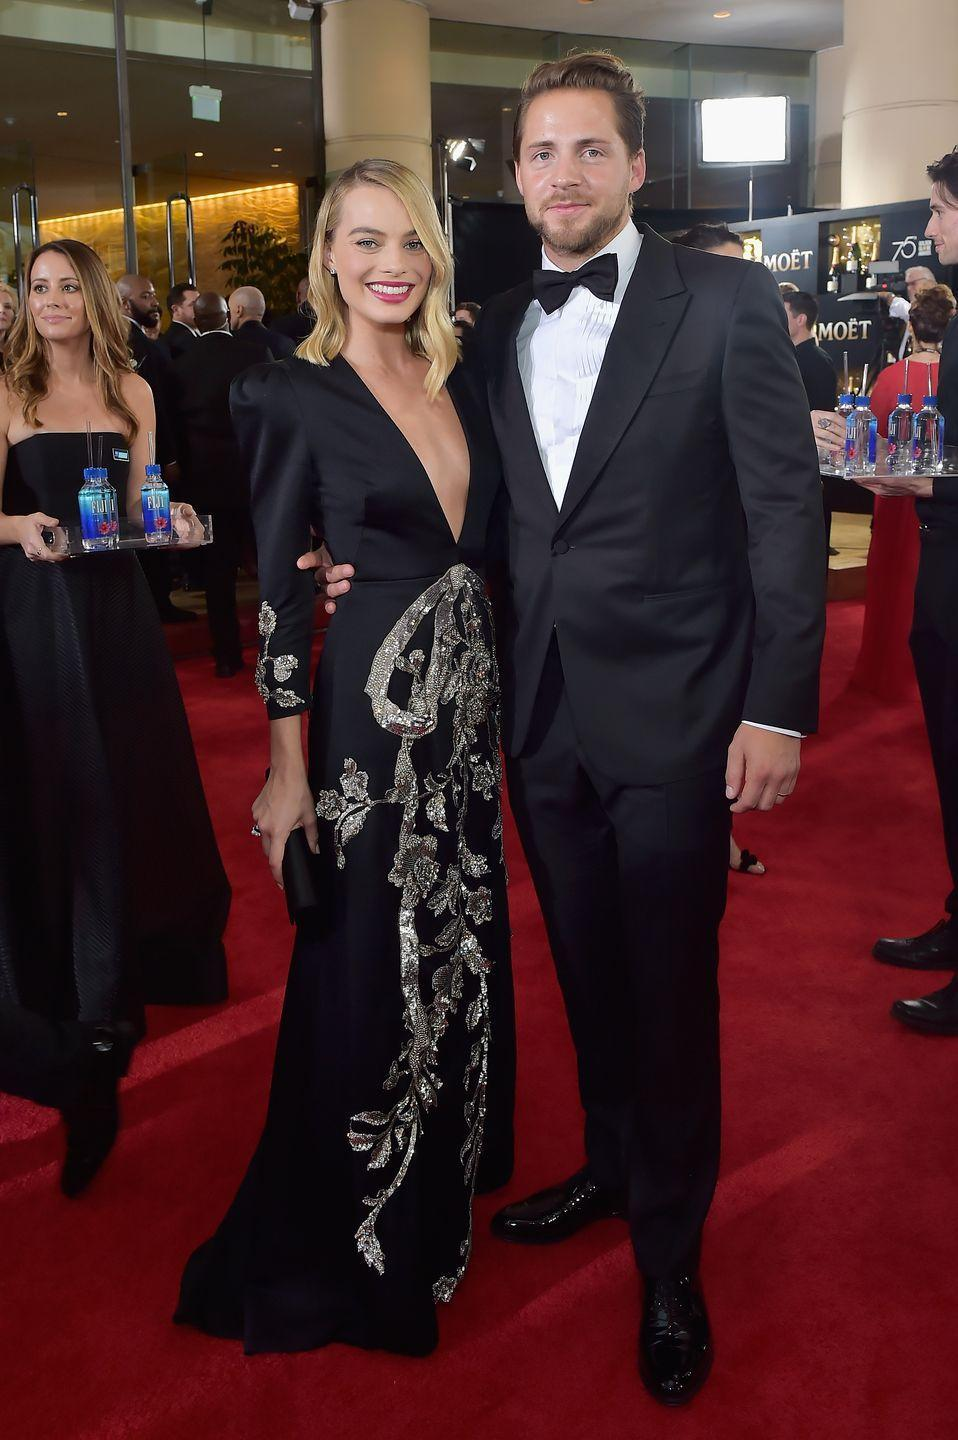 """<p>Margot Robbie and Tom Ackerley tied the knot in December 2016, but didn't make their first appearance as a couple until 2017. Ackerley is also in the film business, as an assistant director and producer. He founded the production company, <a href=""""https://www.elle.com/culture/celebrities/a30784625/who-is-tom-ackerley-margot-robbie-husband/"""" rel=""""nofollow noopener"""" target=""""_blank"""" data-ylk=""""slk:LuckyChap Entertainment"""" class=""""link rapid-noclick-resp"""">LuckyChap Entertainment</a>, with his wife in 2014.</p>"""